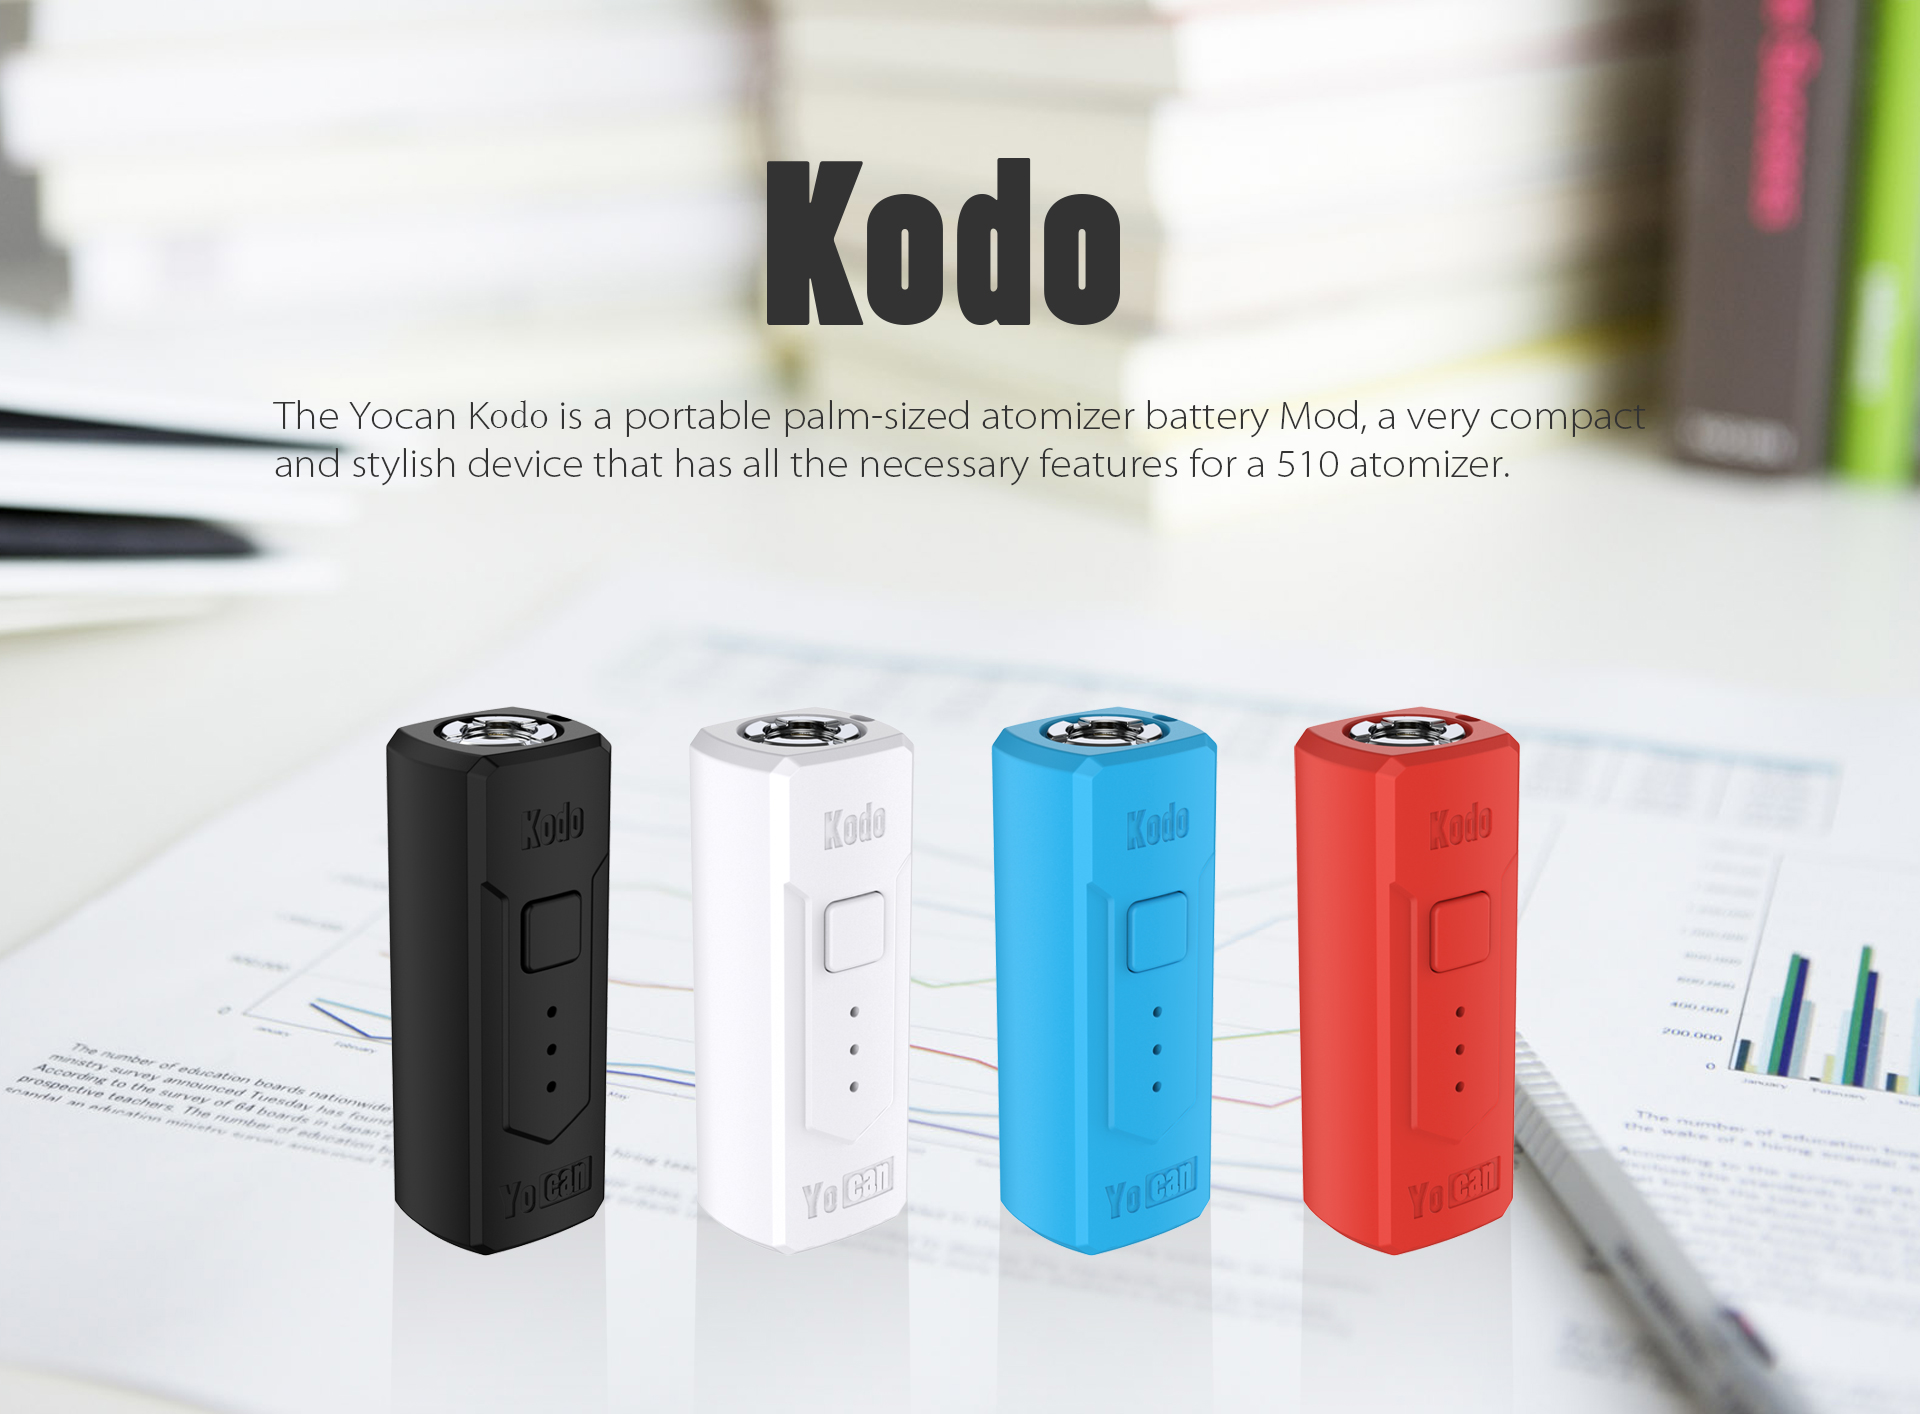 The Yocan Kodo Box Mod Battery is a portable palm-sized atomizer battery mod, it's a very compact and stylish vaporizer.